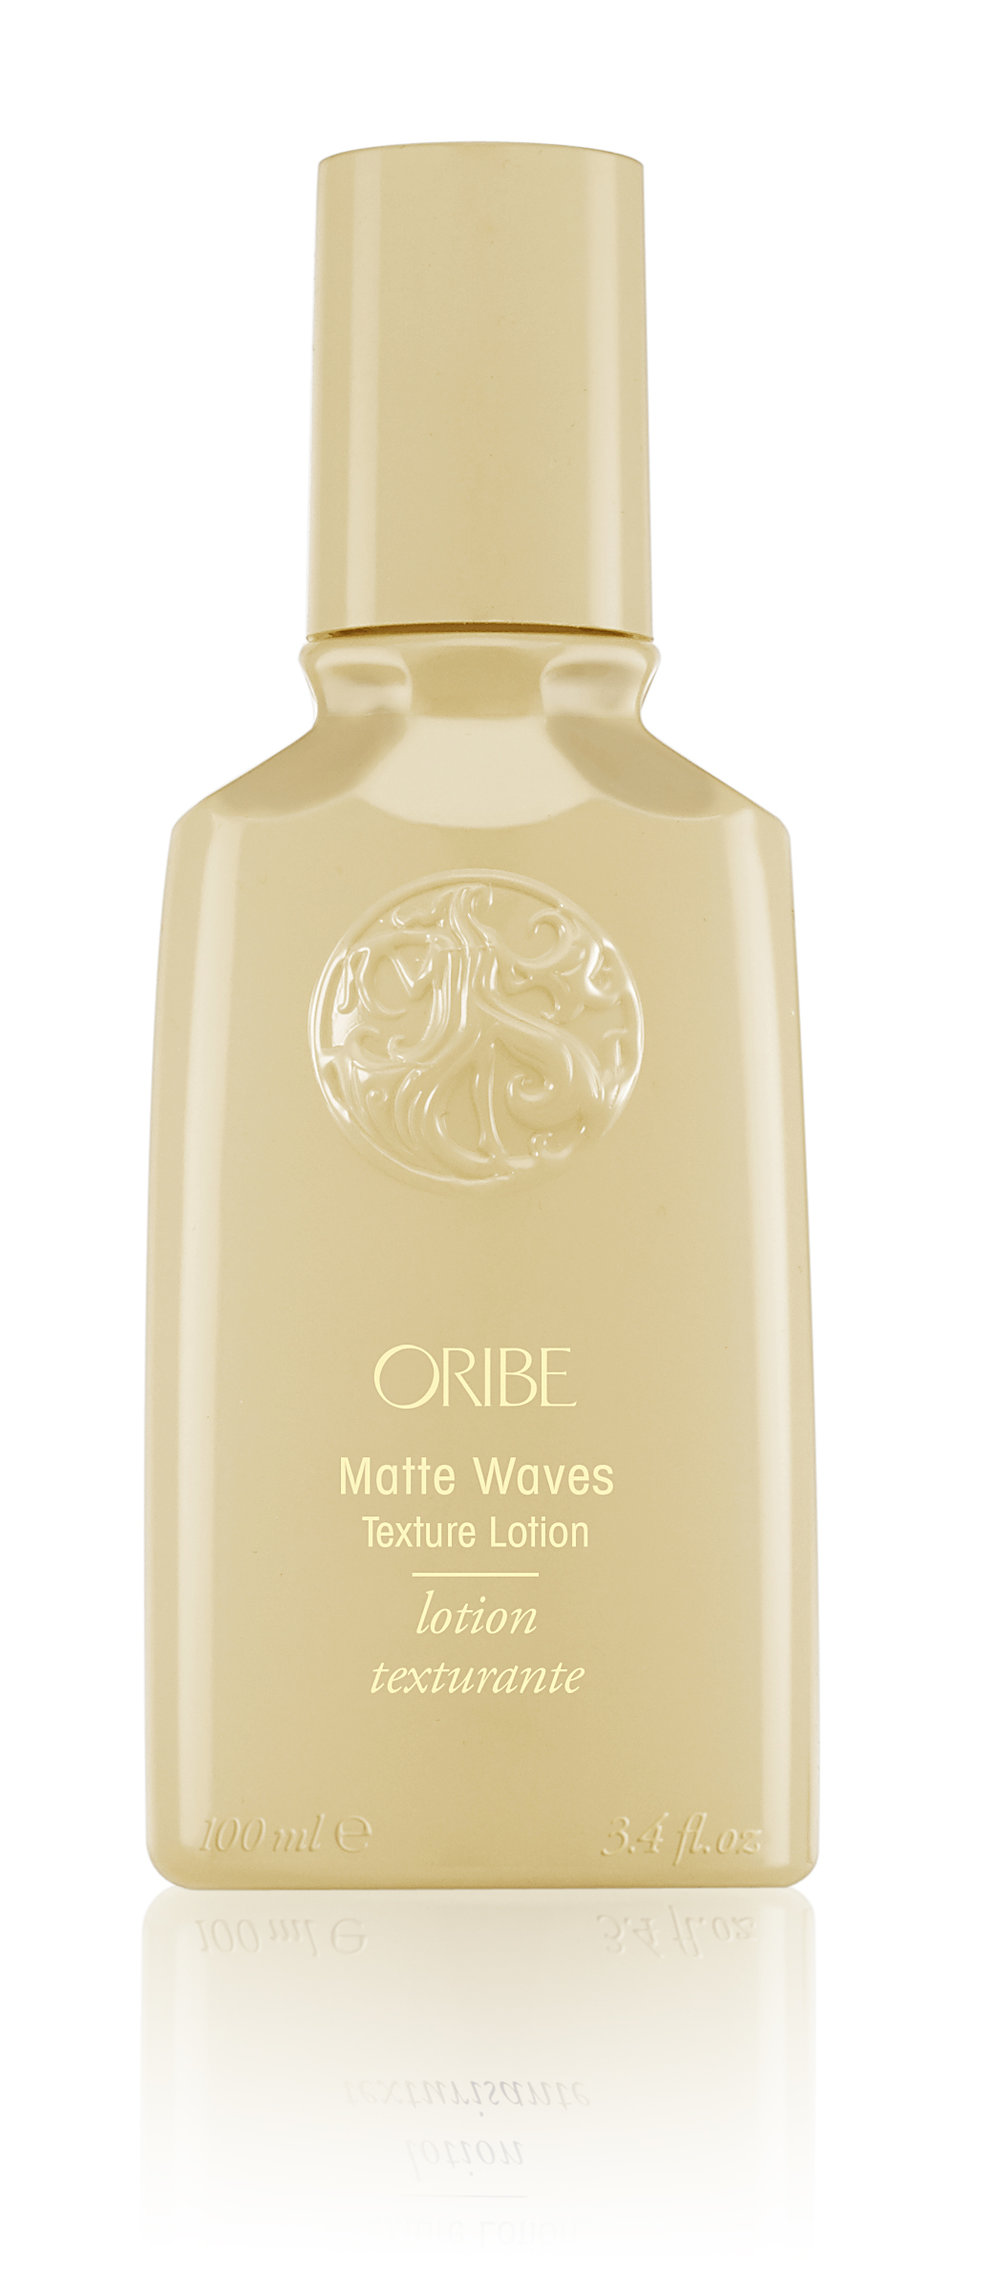 Matte Waves texture lotion .jpg